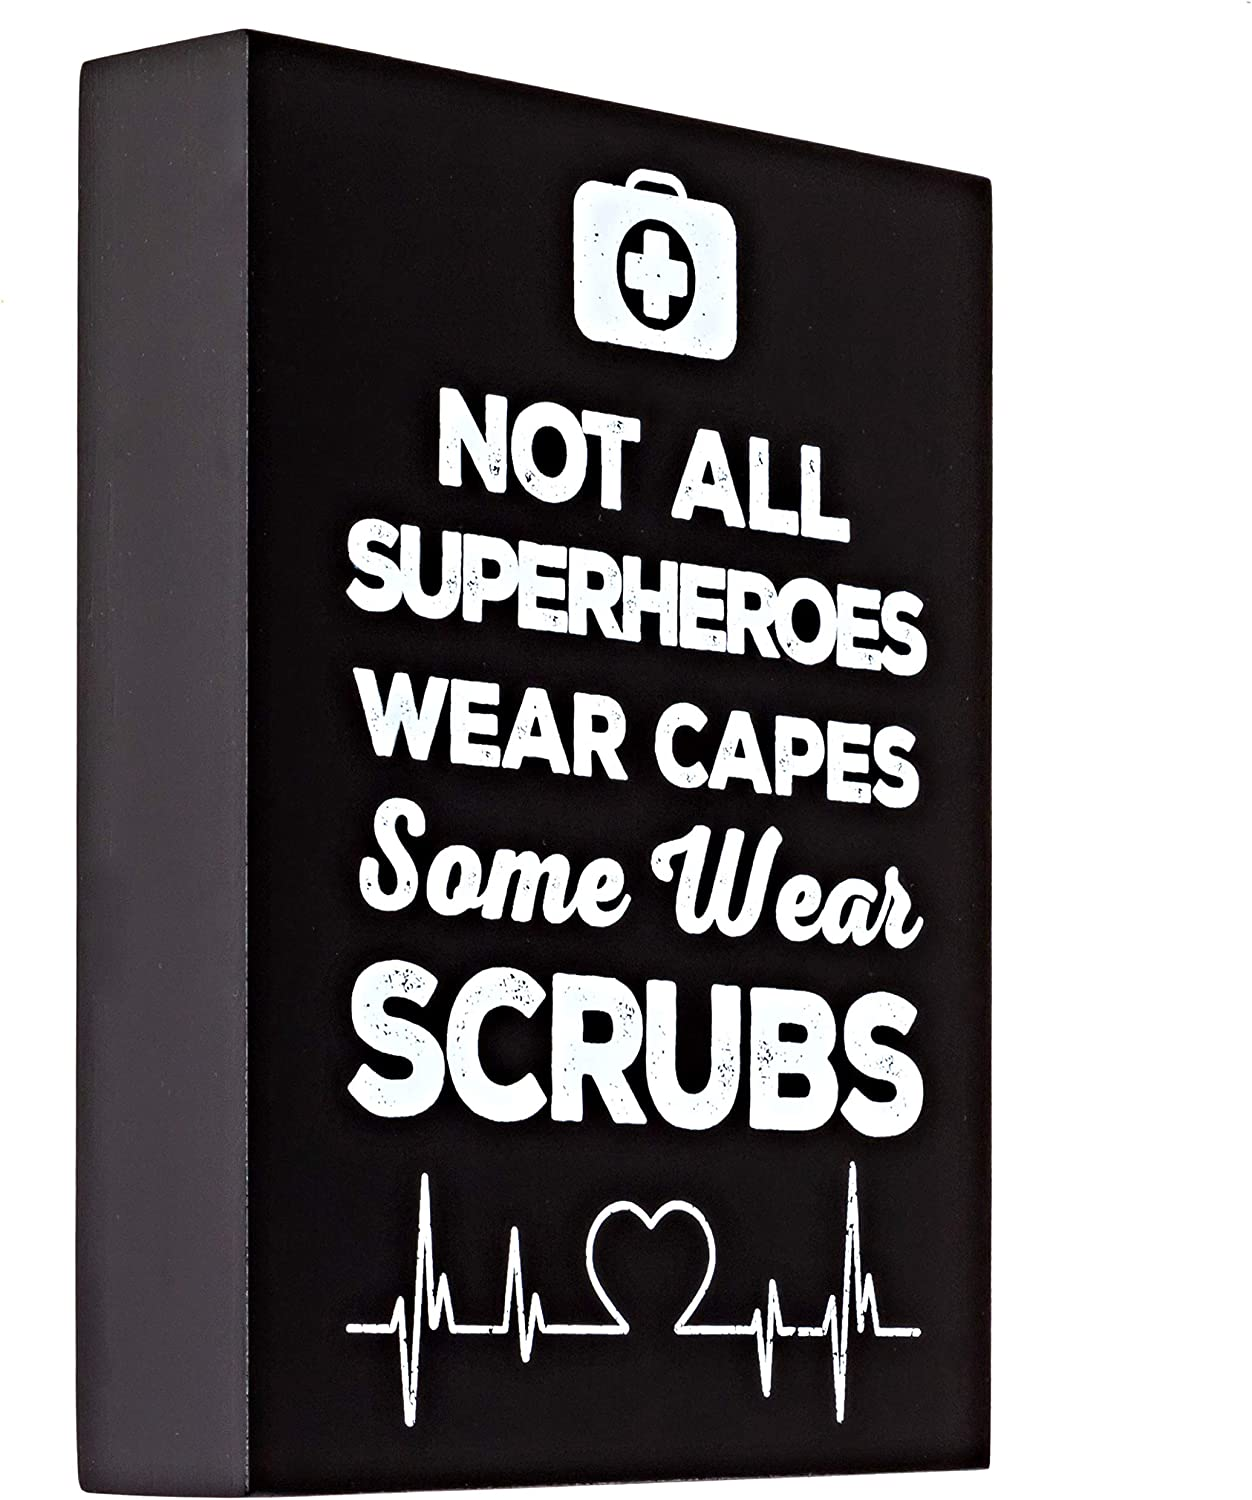 Nurse Decor for Office or Home – Premium Quality Not All Superheroes Wear Capes Nurse Plaque – 6 x 8 x 1.5 Inch Nurse Home Decor – Ideal for Special Occasions